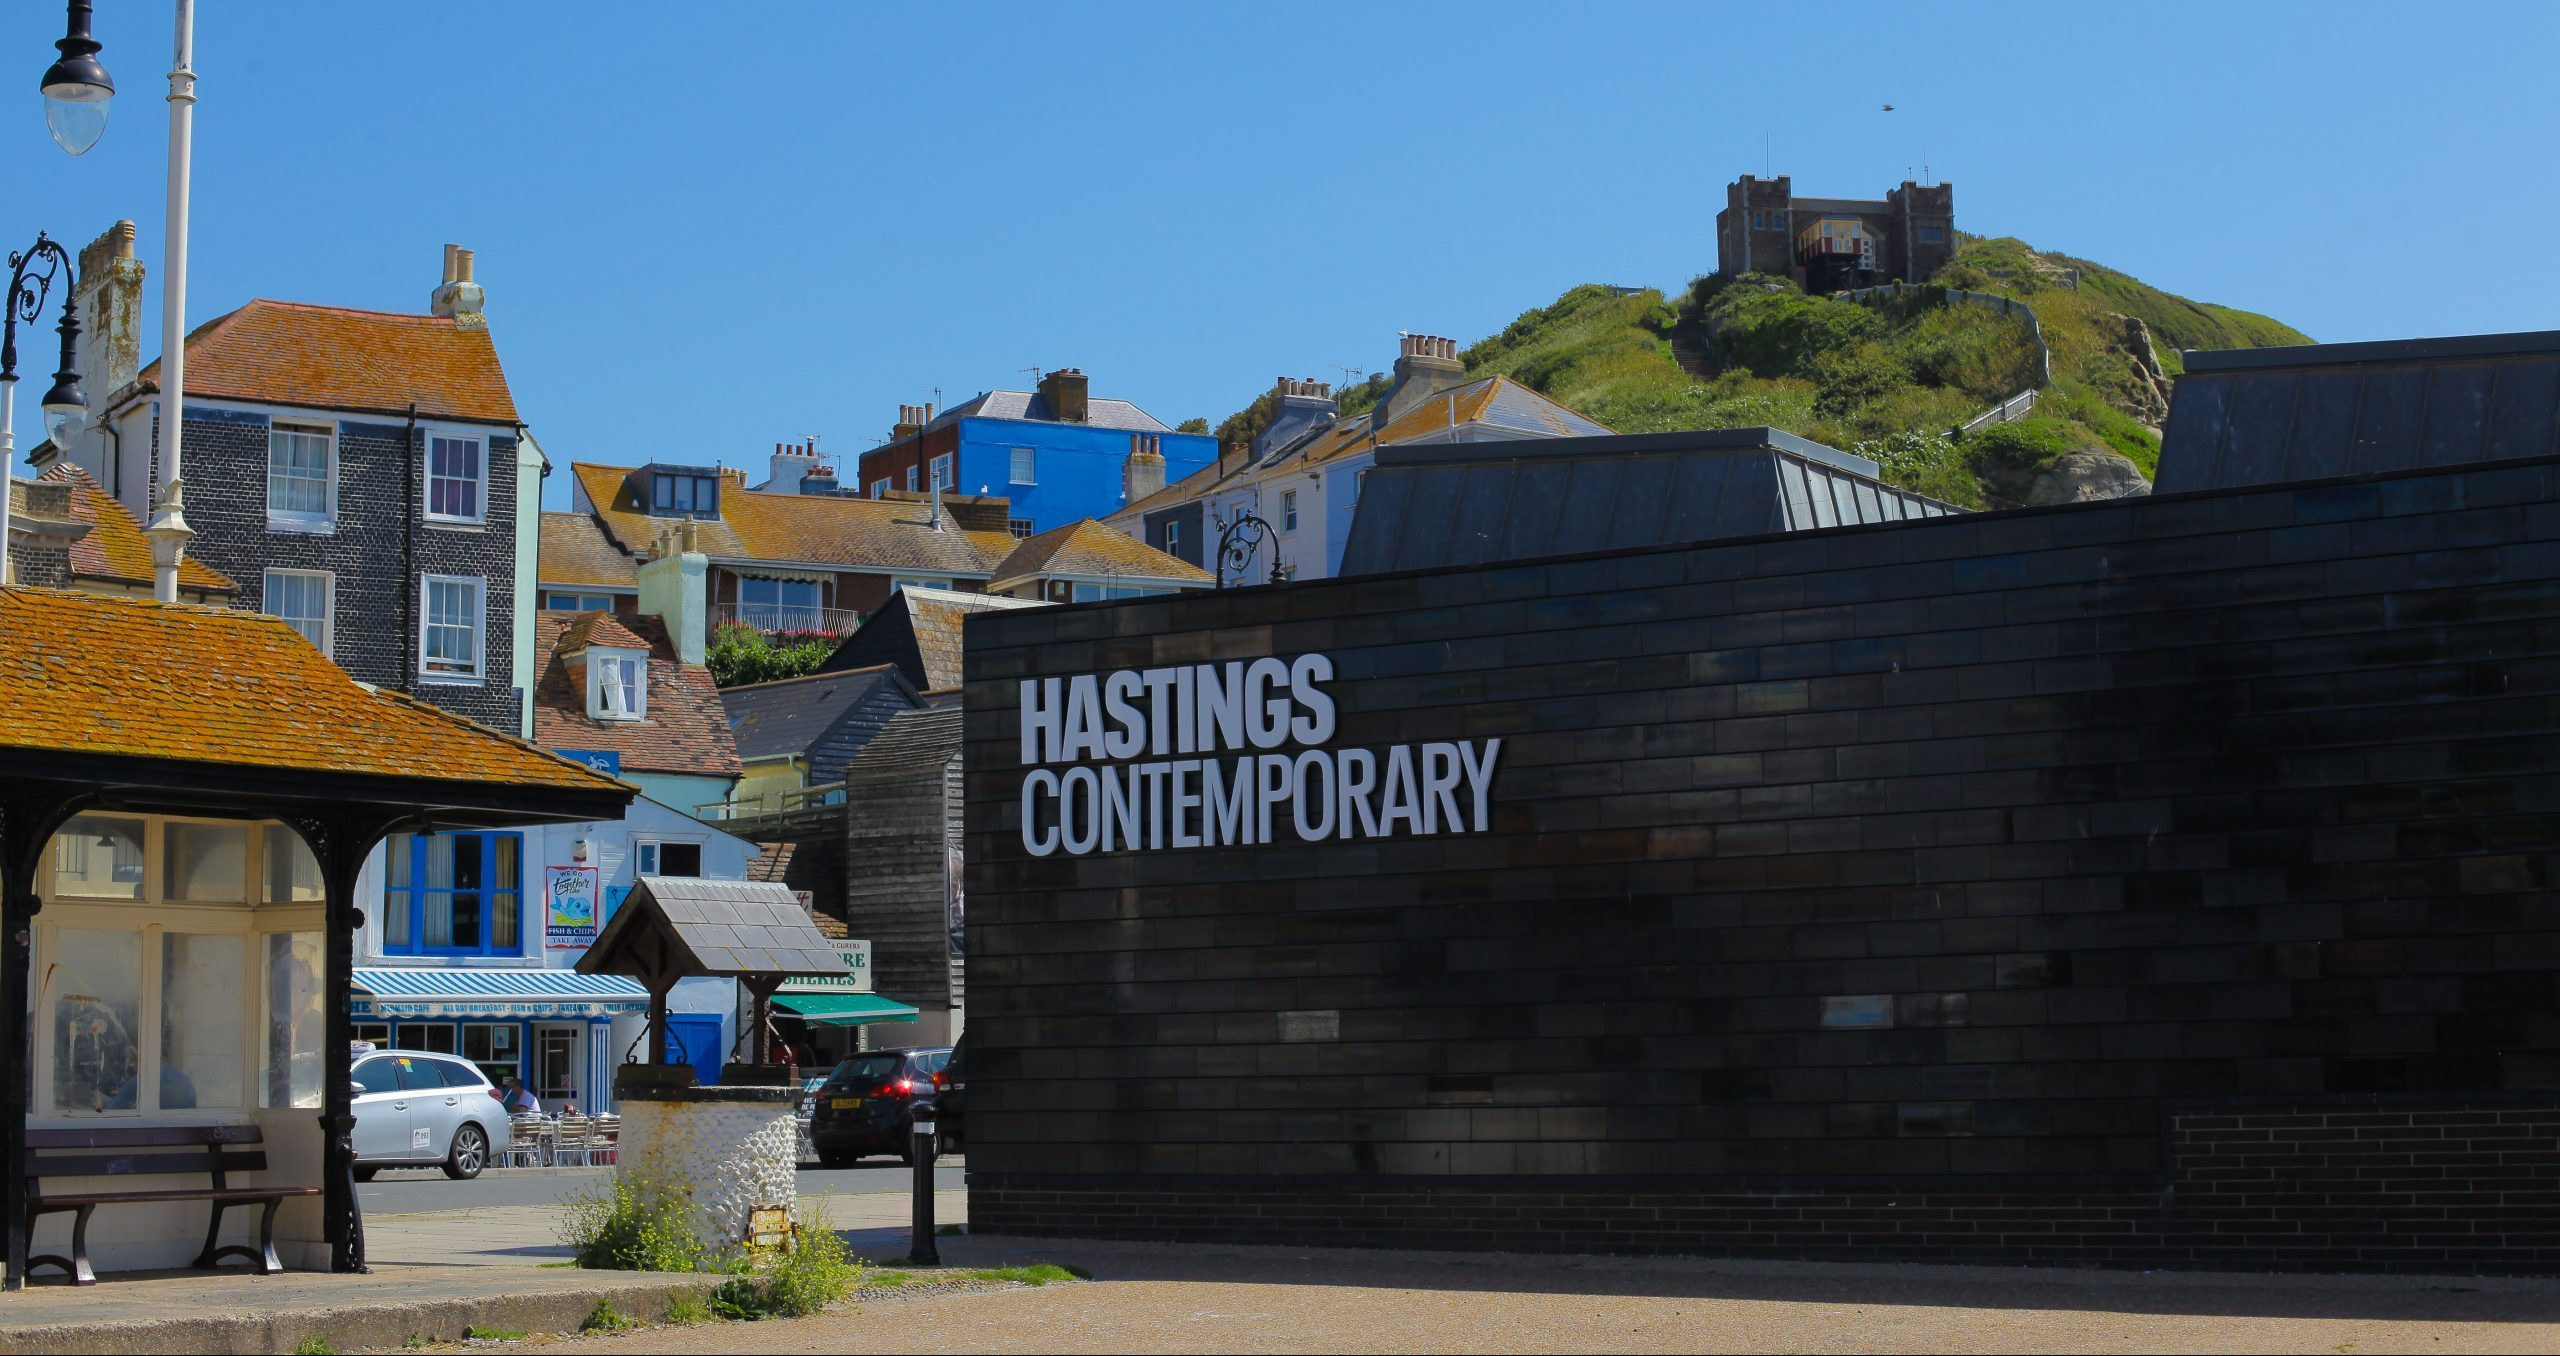 The pandemic has been an opportunity for Hastings Contemporary to develop its offer and business model.